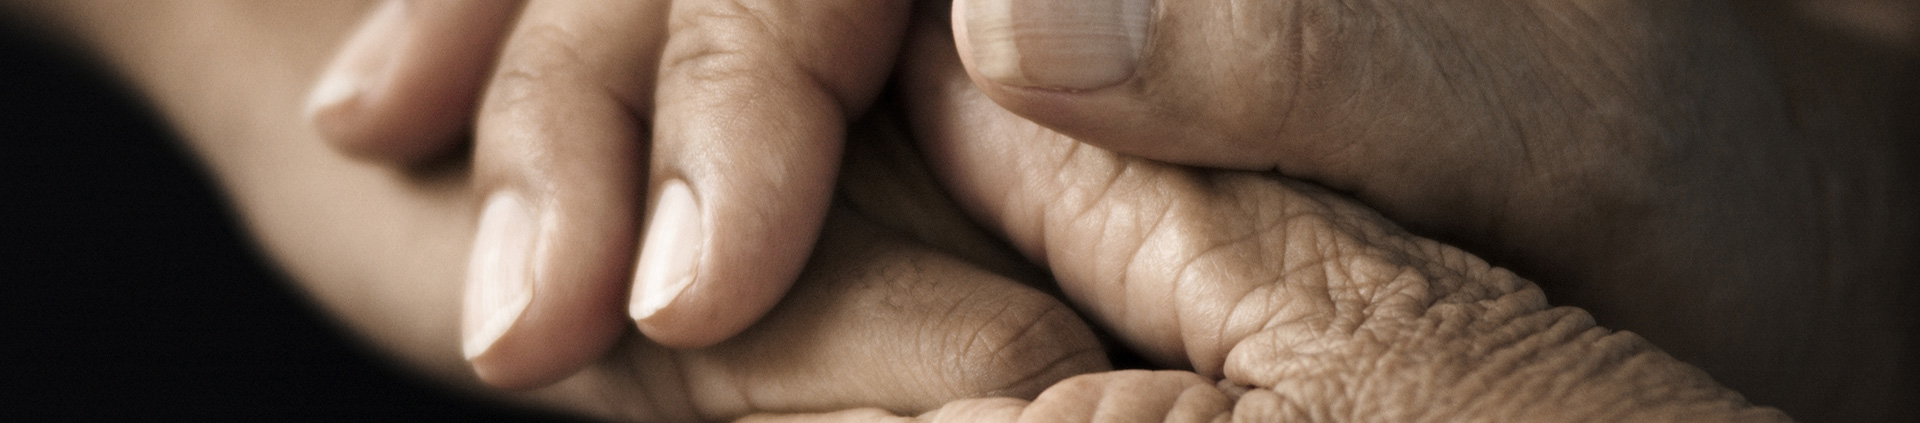 hands holding for wrongful death